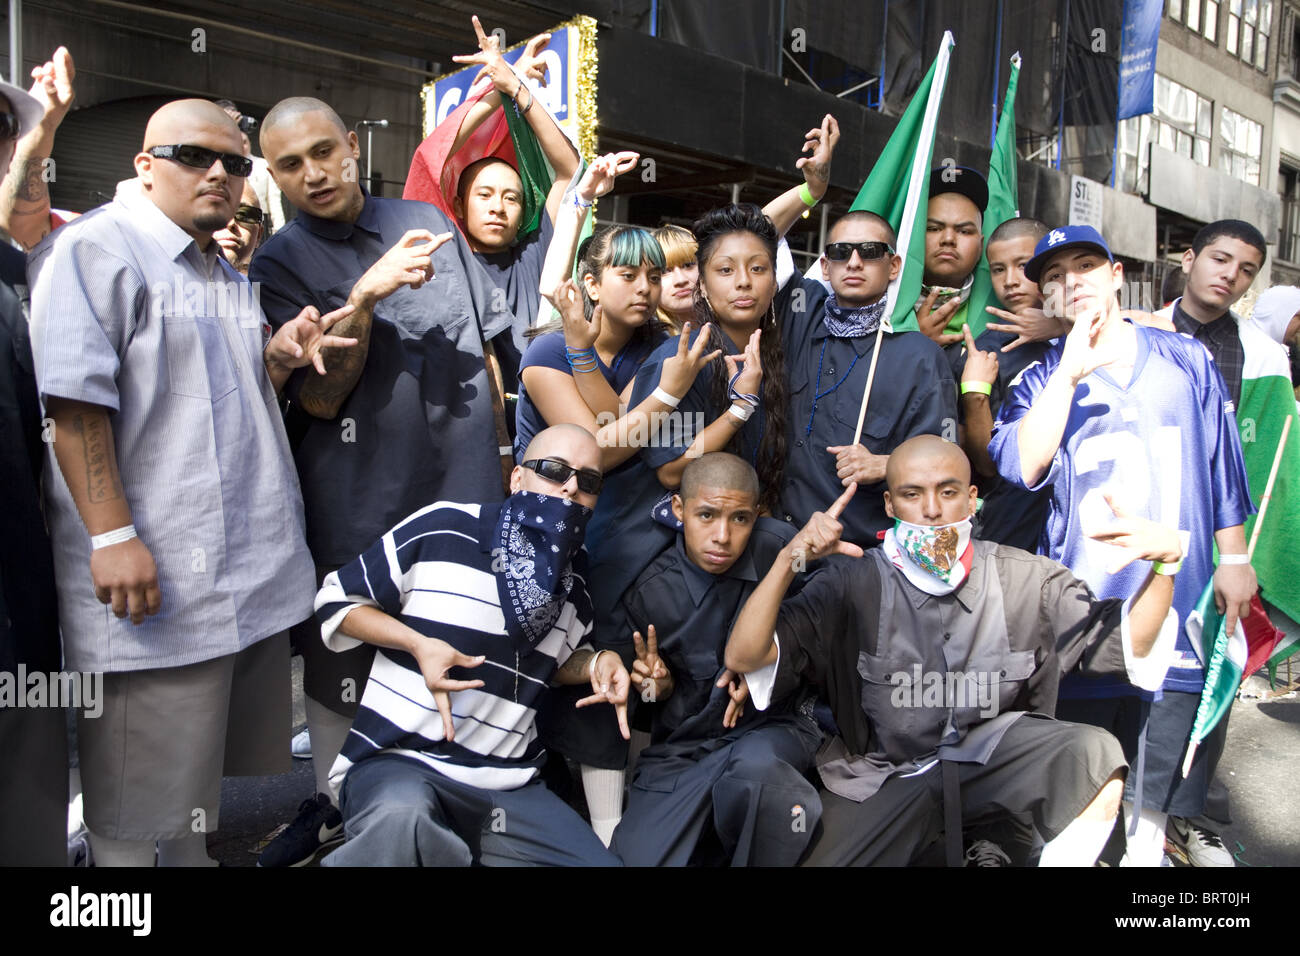 Members of the Azteca Gang celebrate the 2010 Mexican Independence Day Parade in New York City - Stock Image